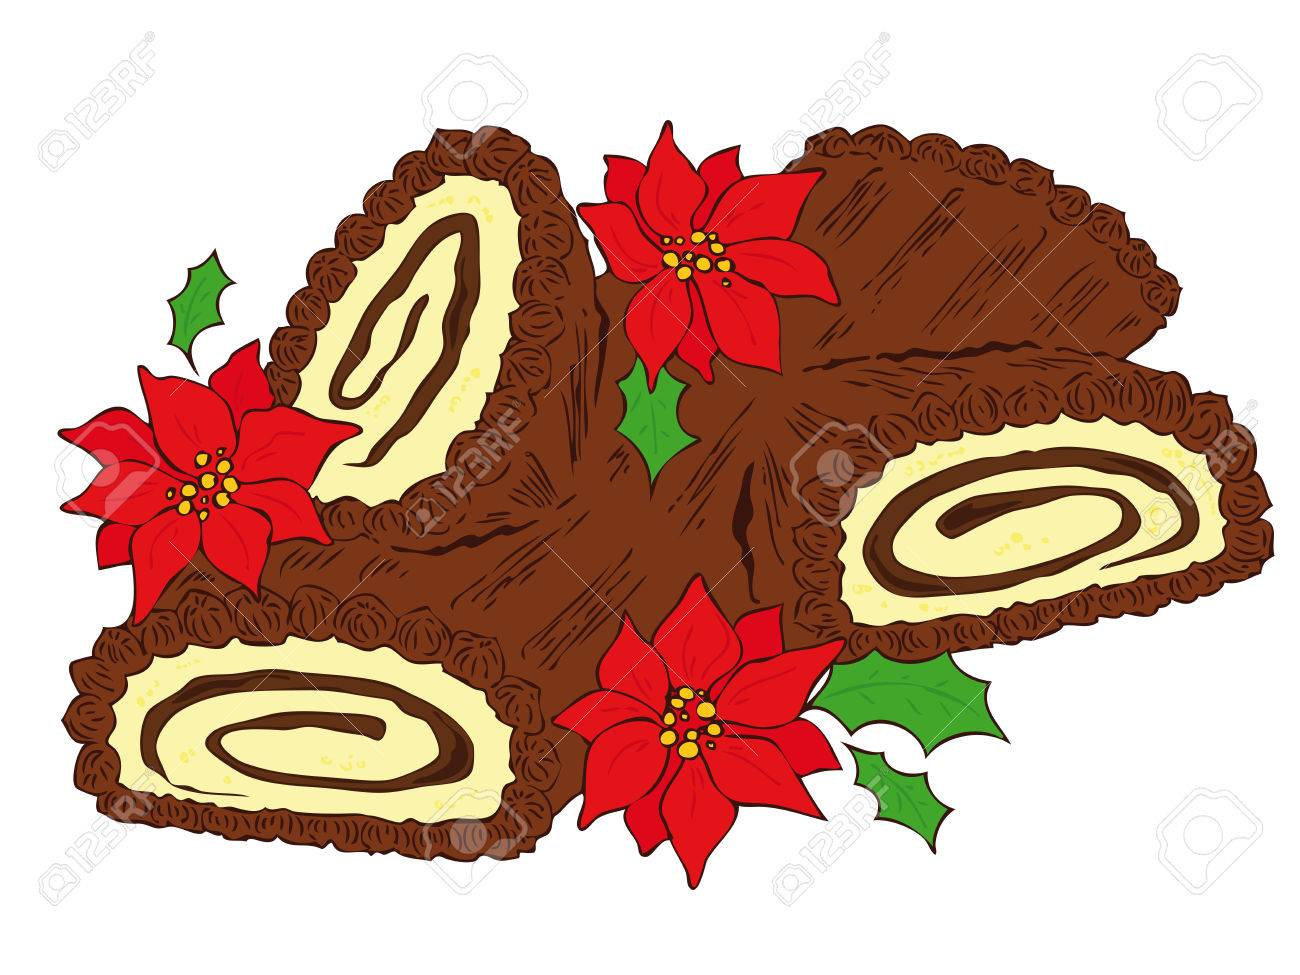 Chocolate Yule Log. Royalty Free Cliparts, Vectors, And Stock ...